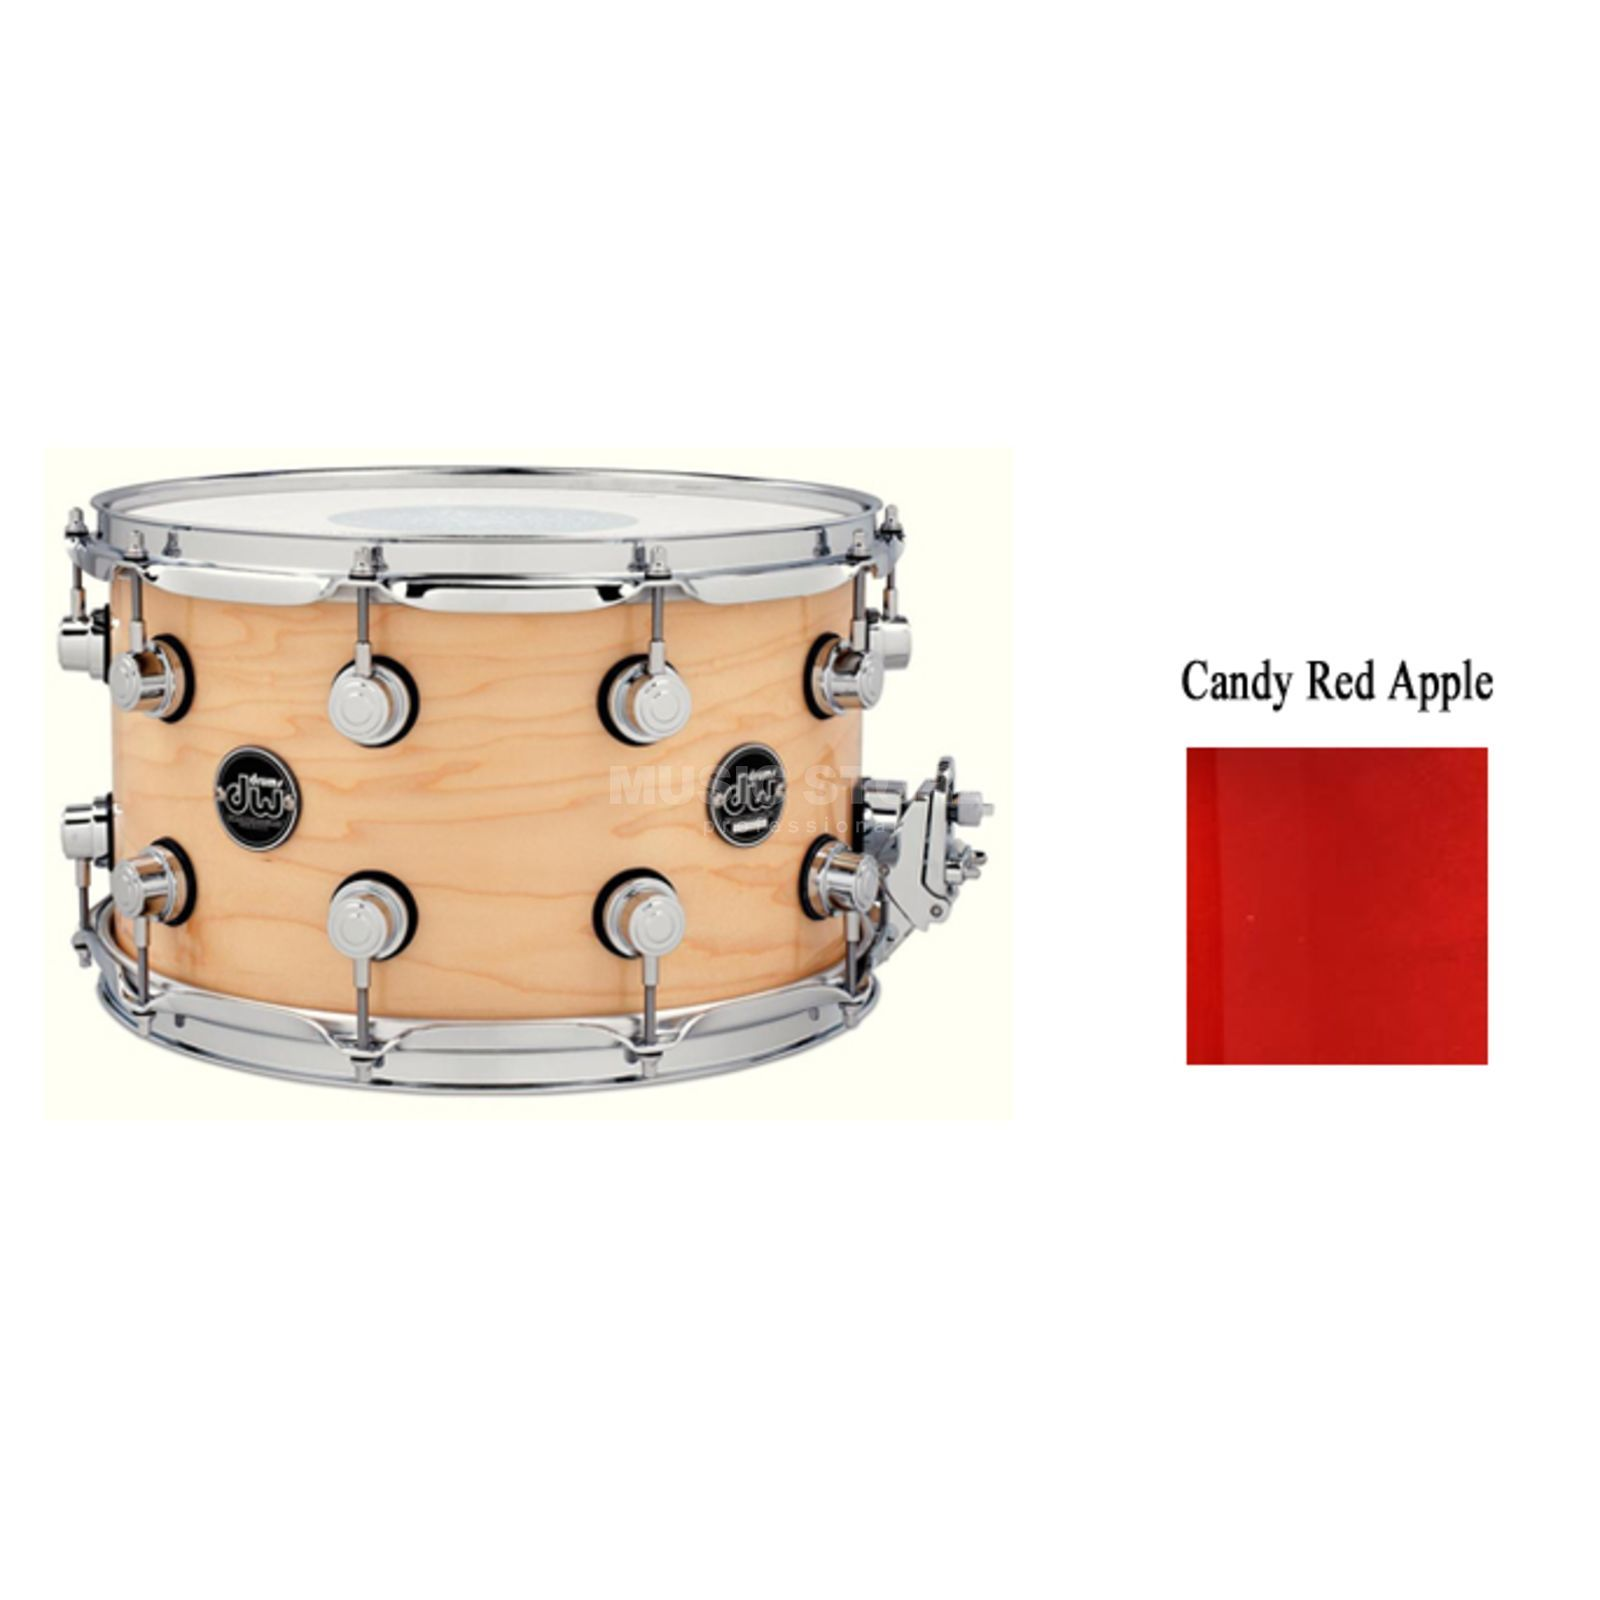 "Drum Workshop Performance Snare 14""x8"", Candy Apple Red Produktbillede"